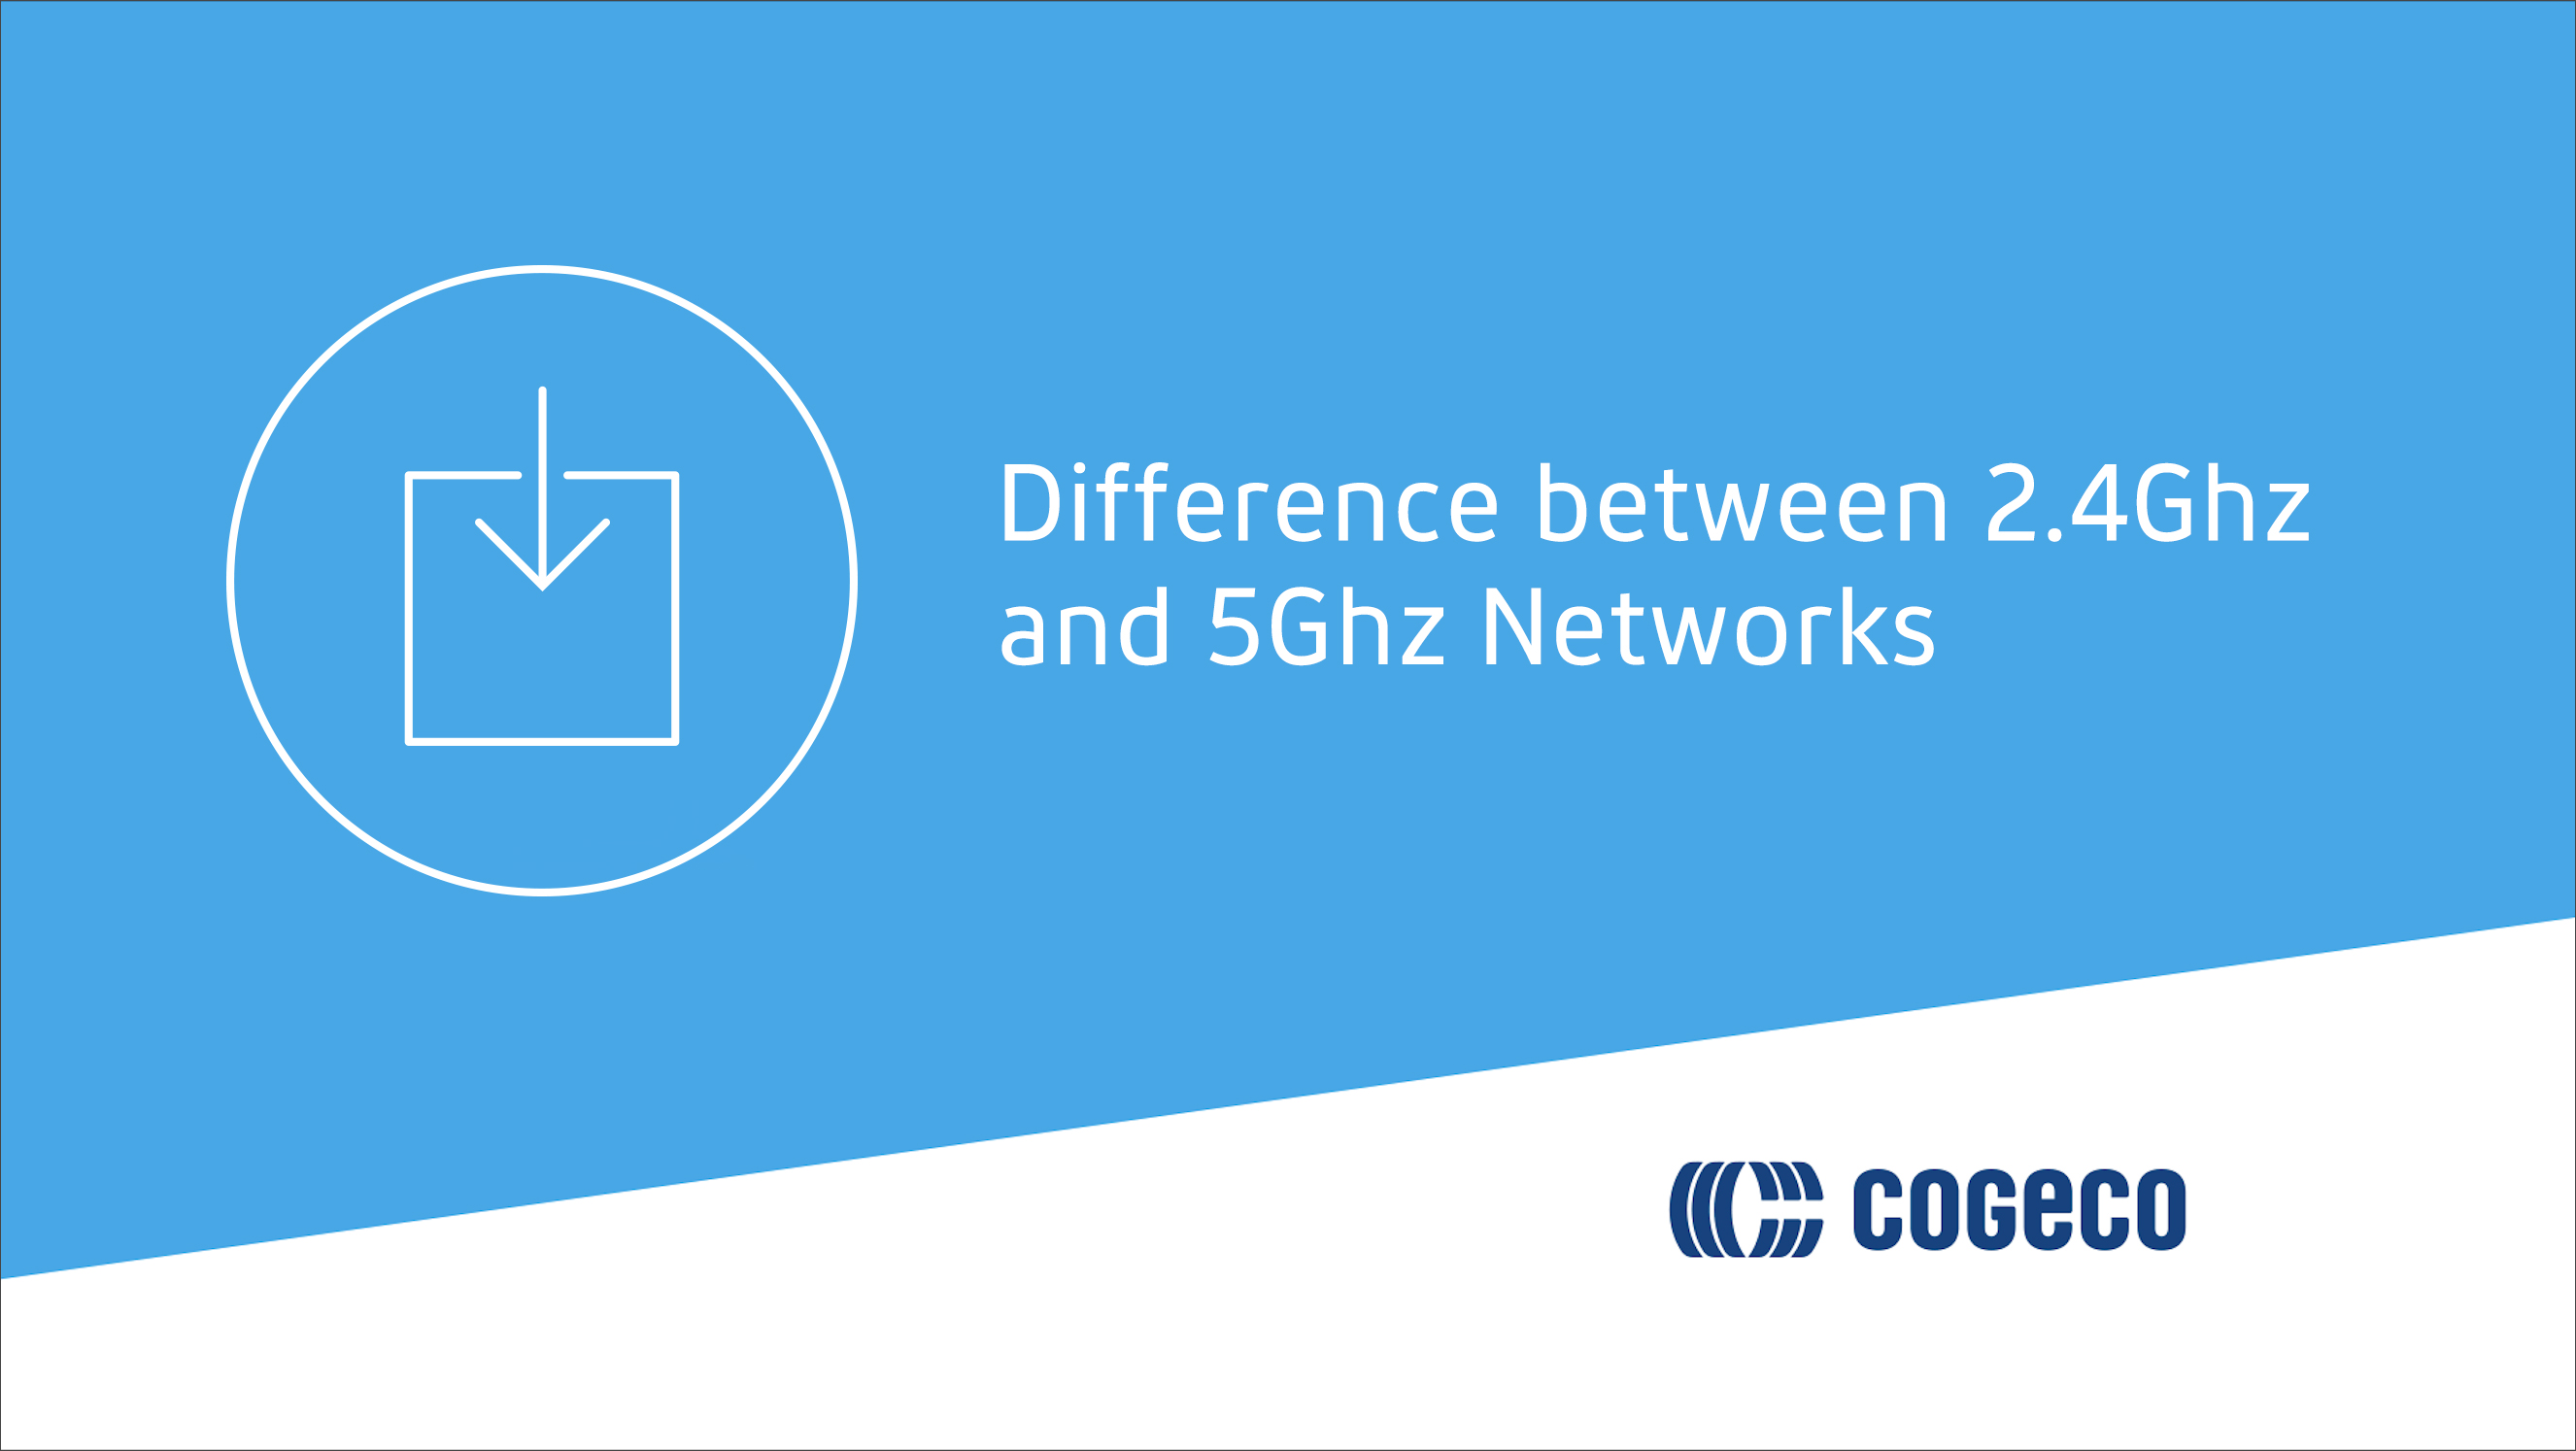 Difference between 2.4Ghz and 5Ghz Networks